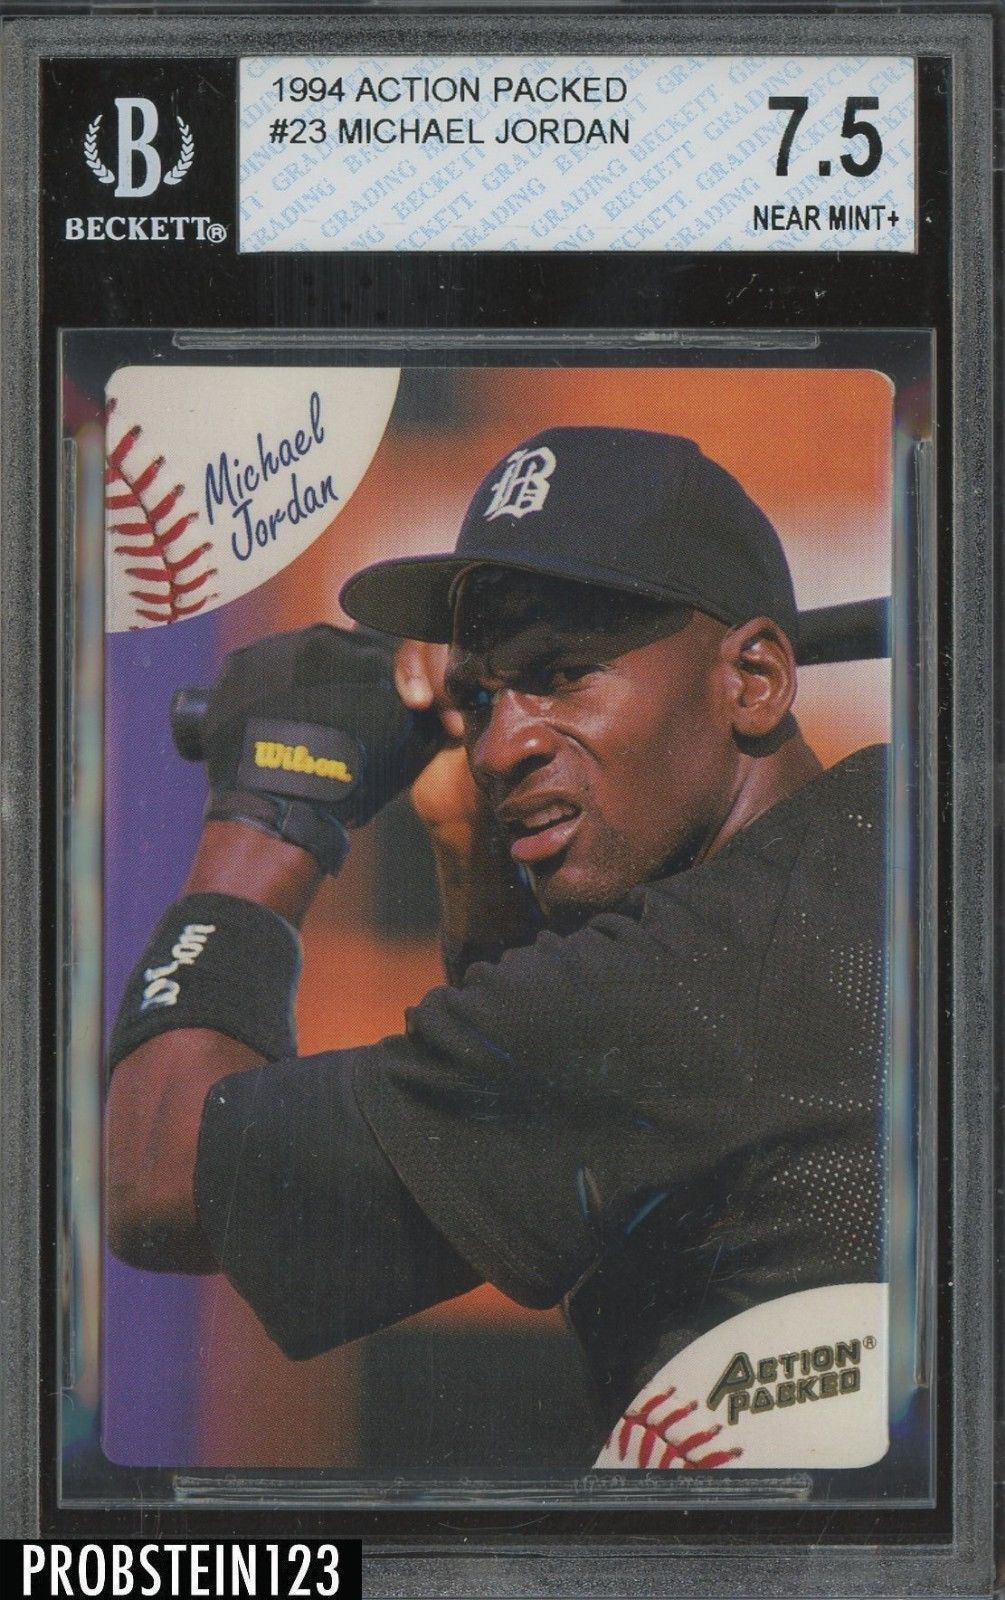 1994 Action Packed 23 Michael Jordan Chicago White Sox Bgs